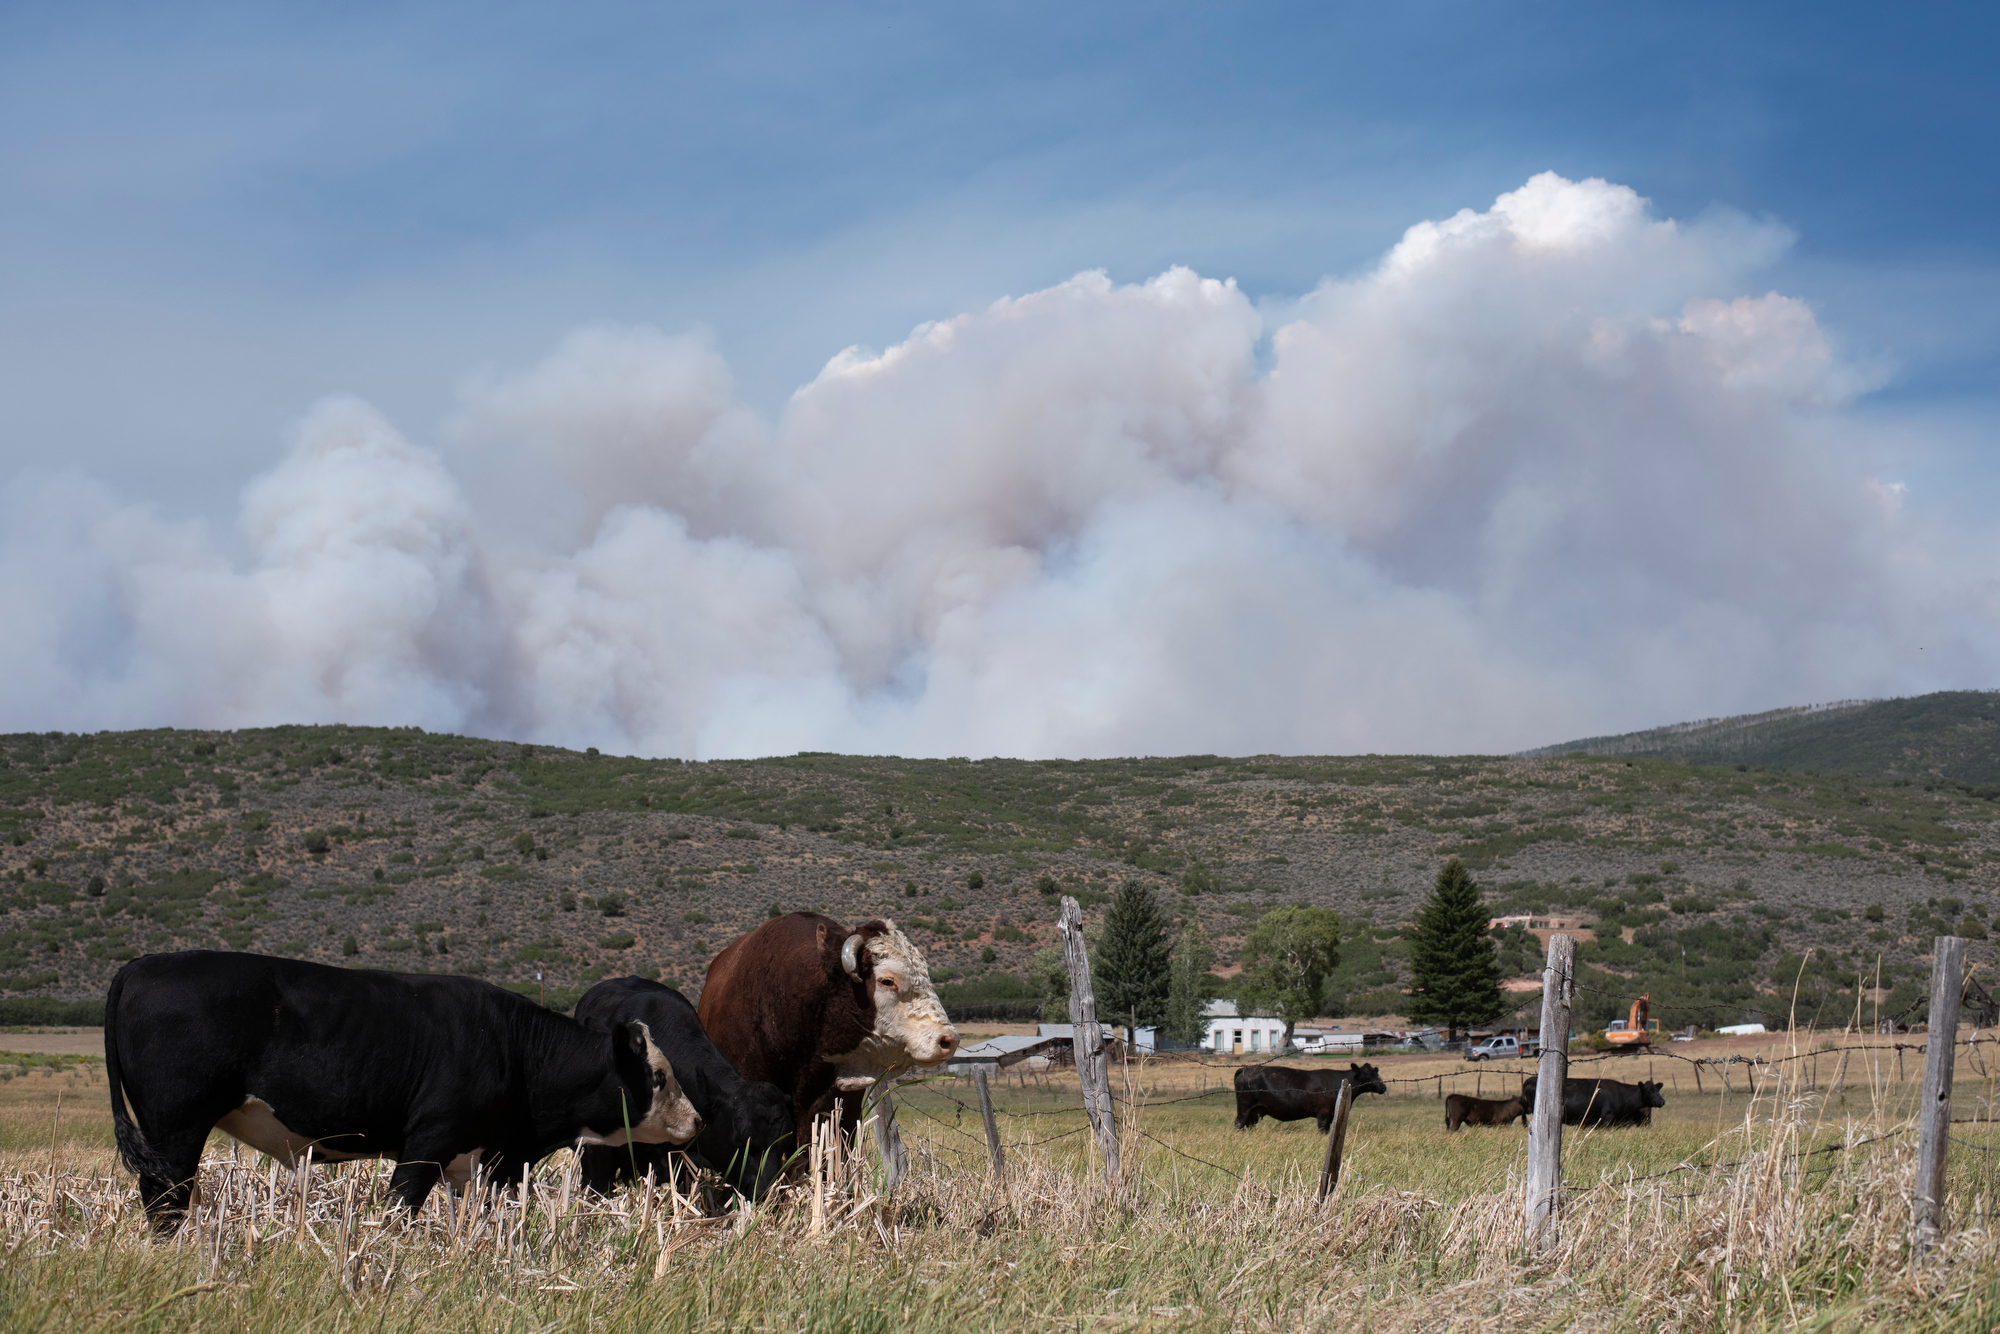 GRIZZLY CREEK FIRE GLENWOOD SPRINGS LIVESTOCK 200813